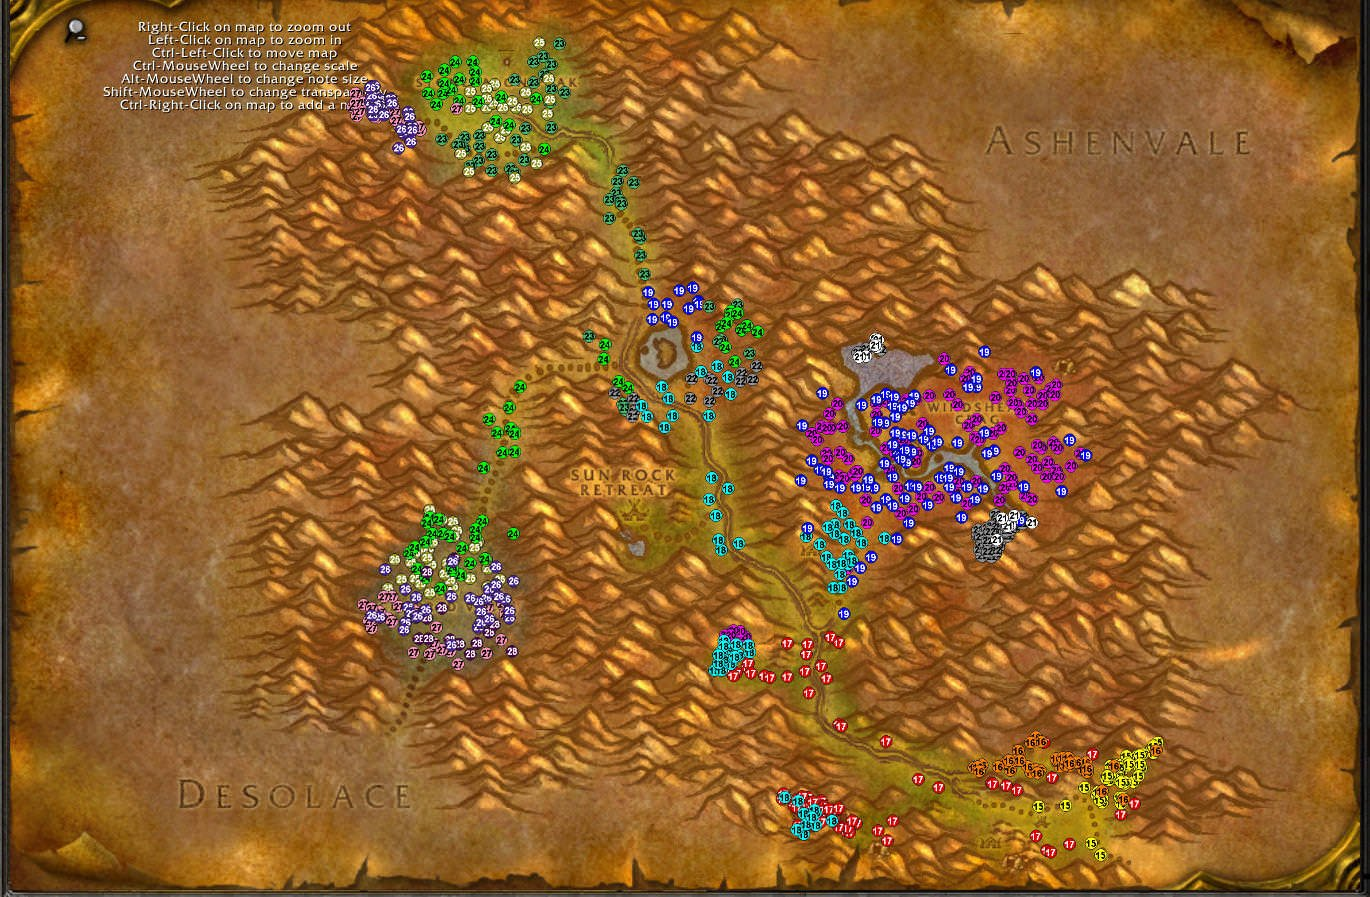 Stonetalon Mountains WoW classic leveling guide